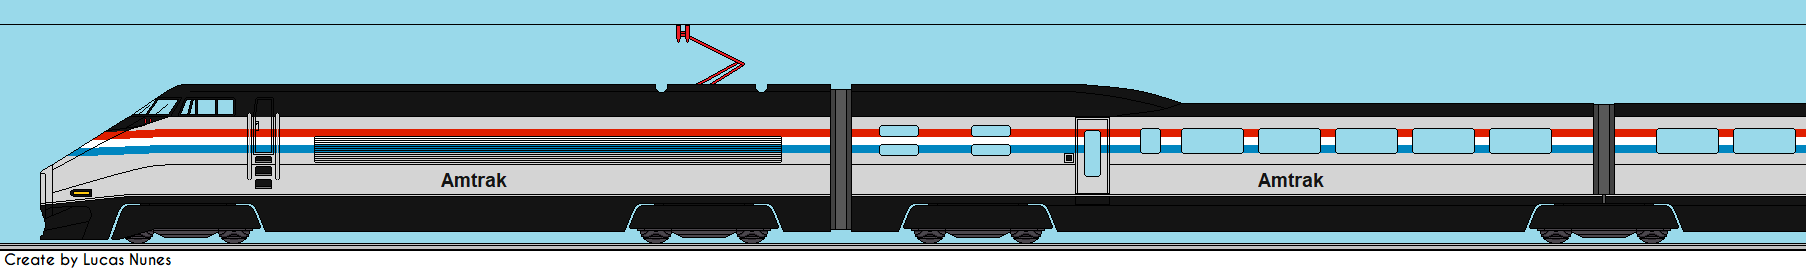 Amtrak 70s High Speed Train.png